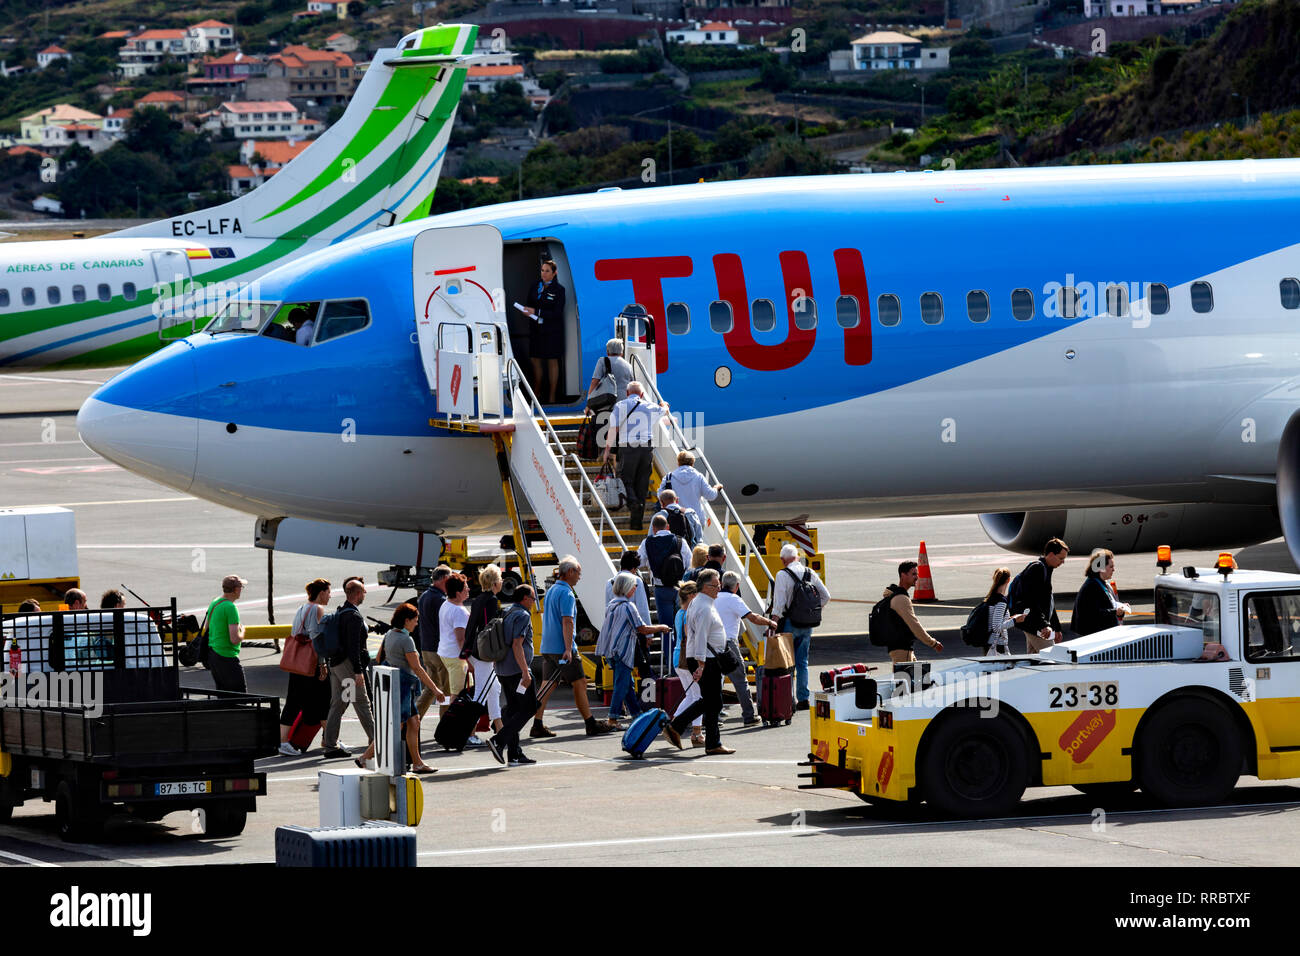 Passengers boarding a TUI Boeing 737 at Cristiano Ronaldo (Funchal) Airport, Madeira, Portugal. - Stock Image